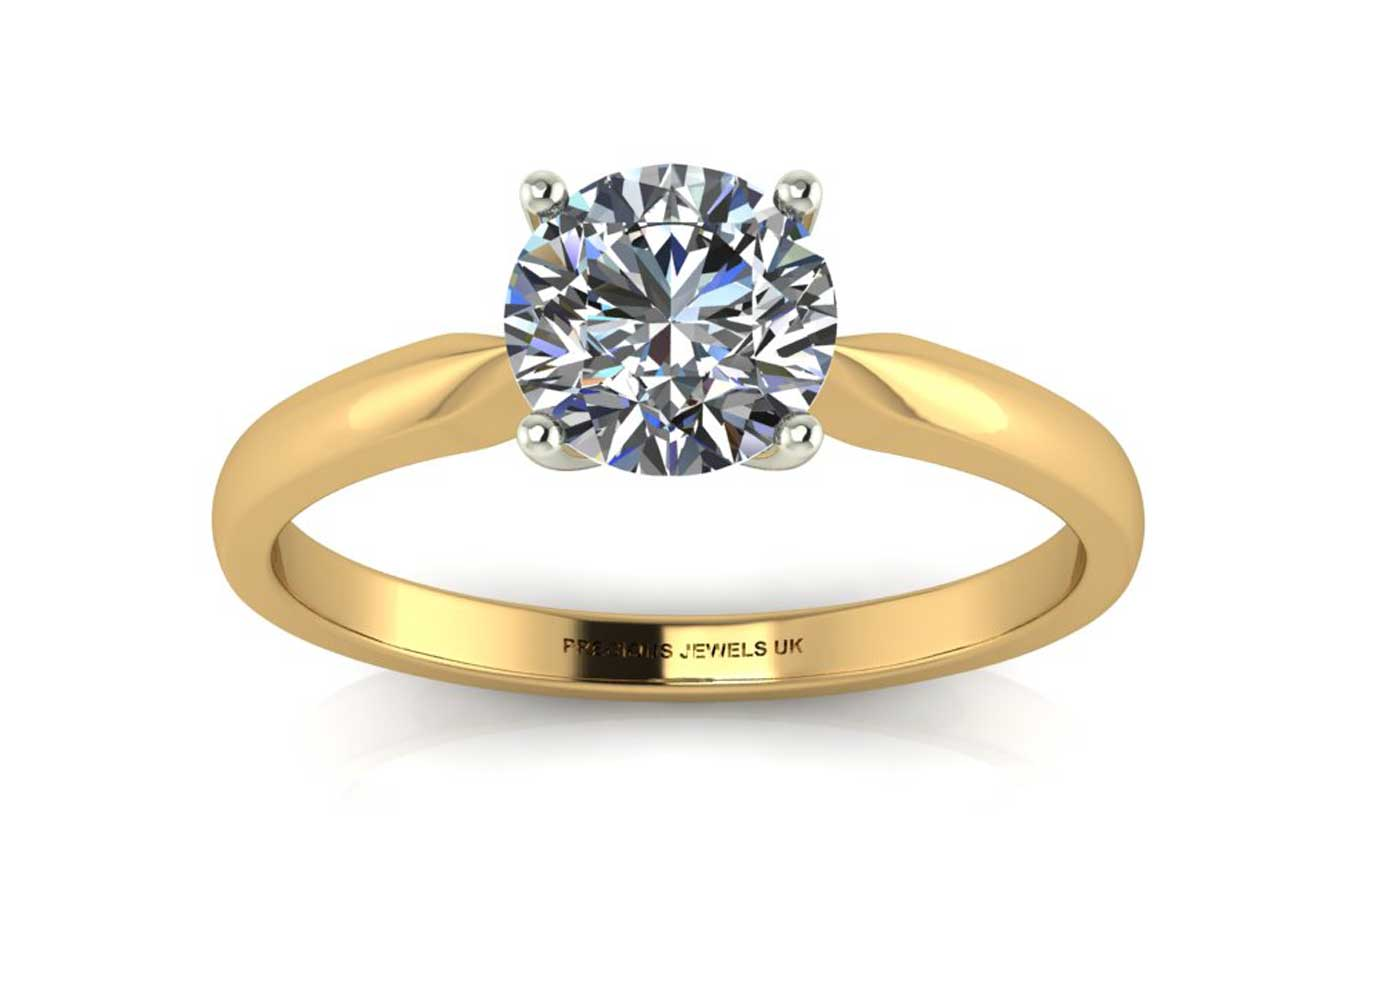 Lot 1 - 18ct Yellow Gold Claw Set Diamond Ring 0.25 Carats